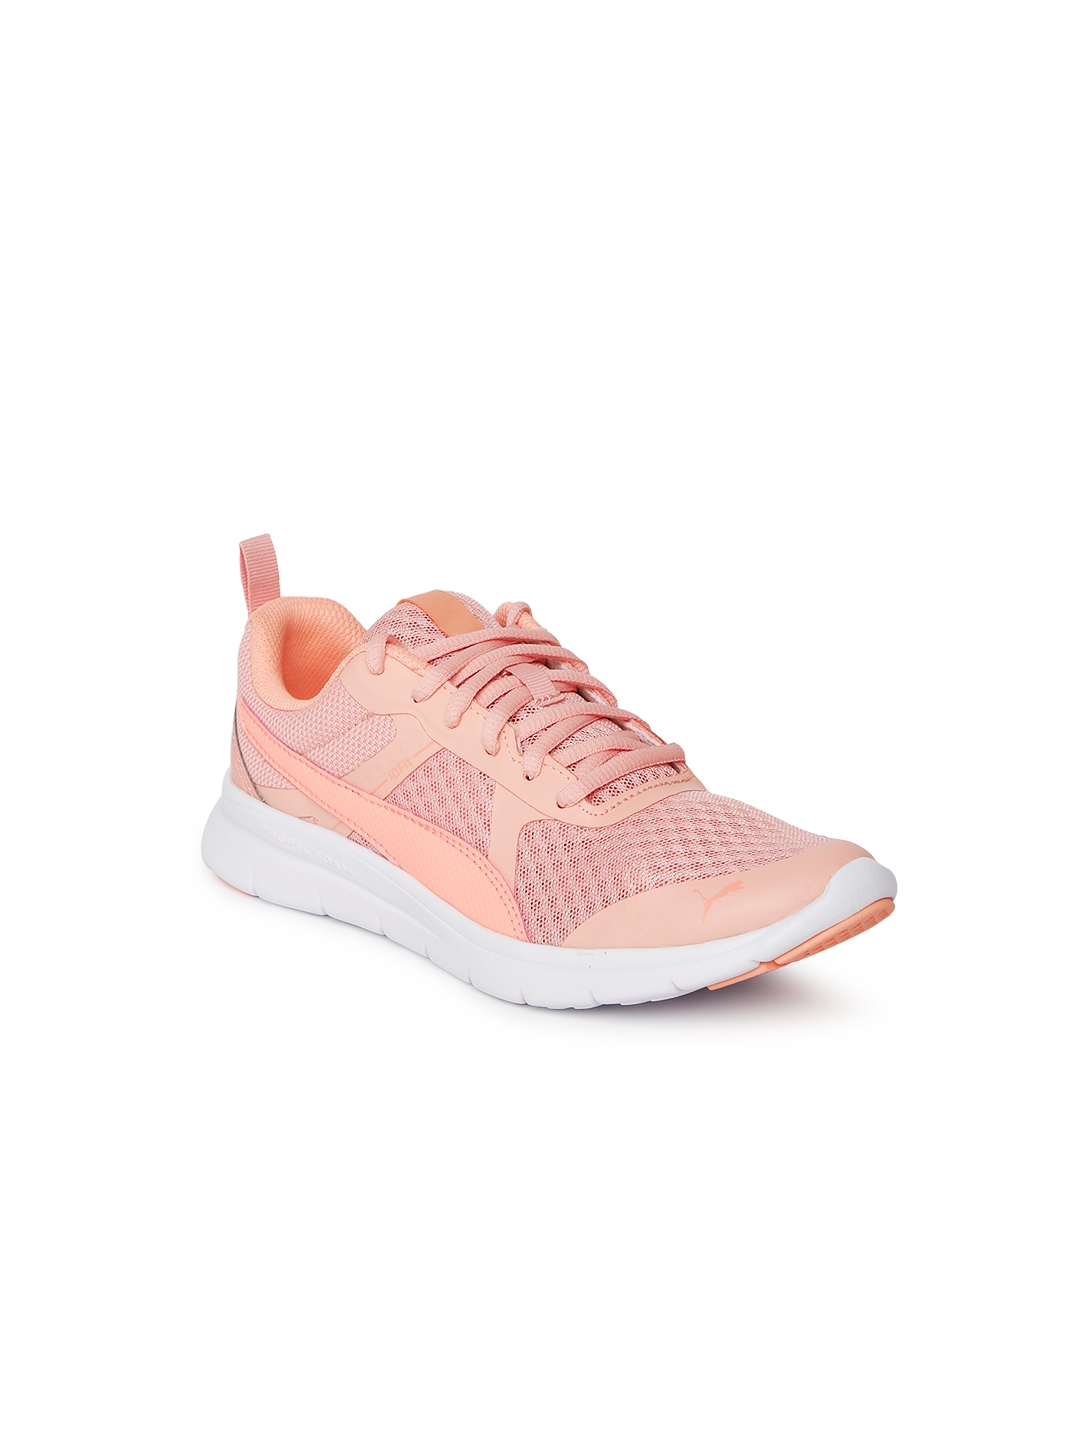 Buy Puma Girls Peach Coloured Flex Essential Jr Training Shoes ... 084a4e93c